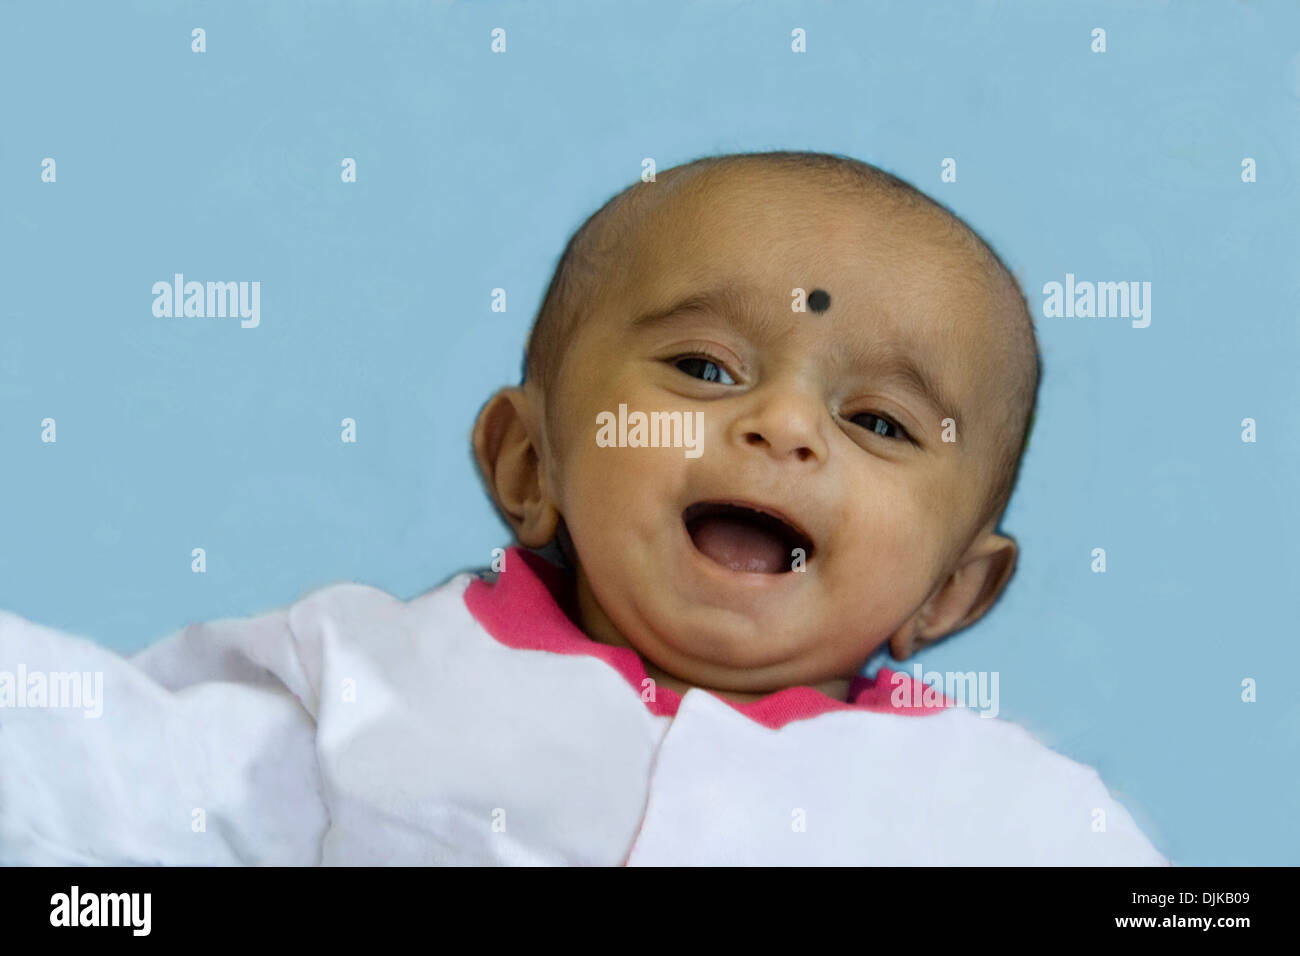 Charming giggle of young baby with mouth wide open - Stock Image